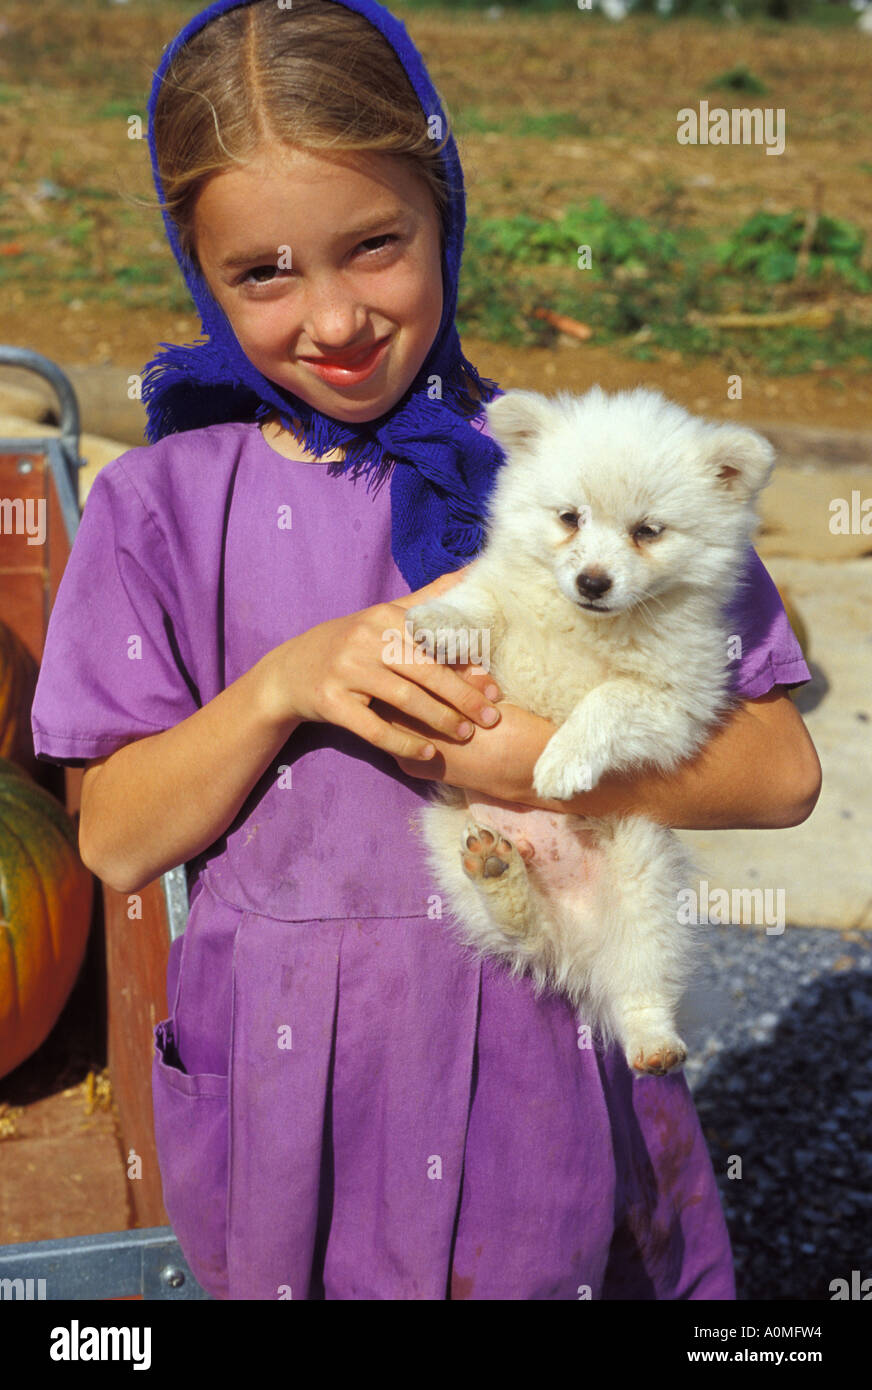 1 one young amish girl white pet dog pup puppy tradtional purple